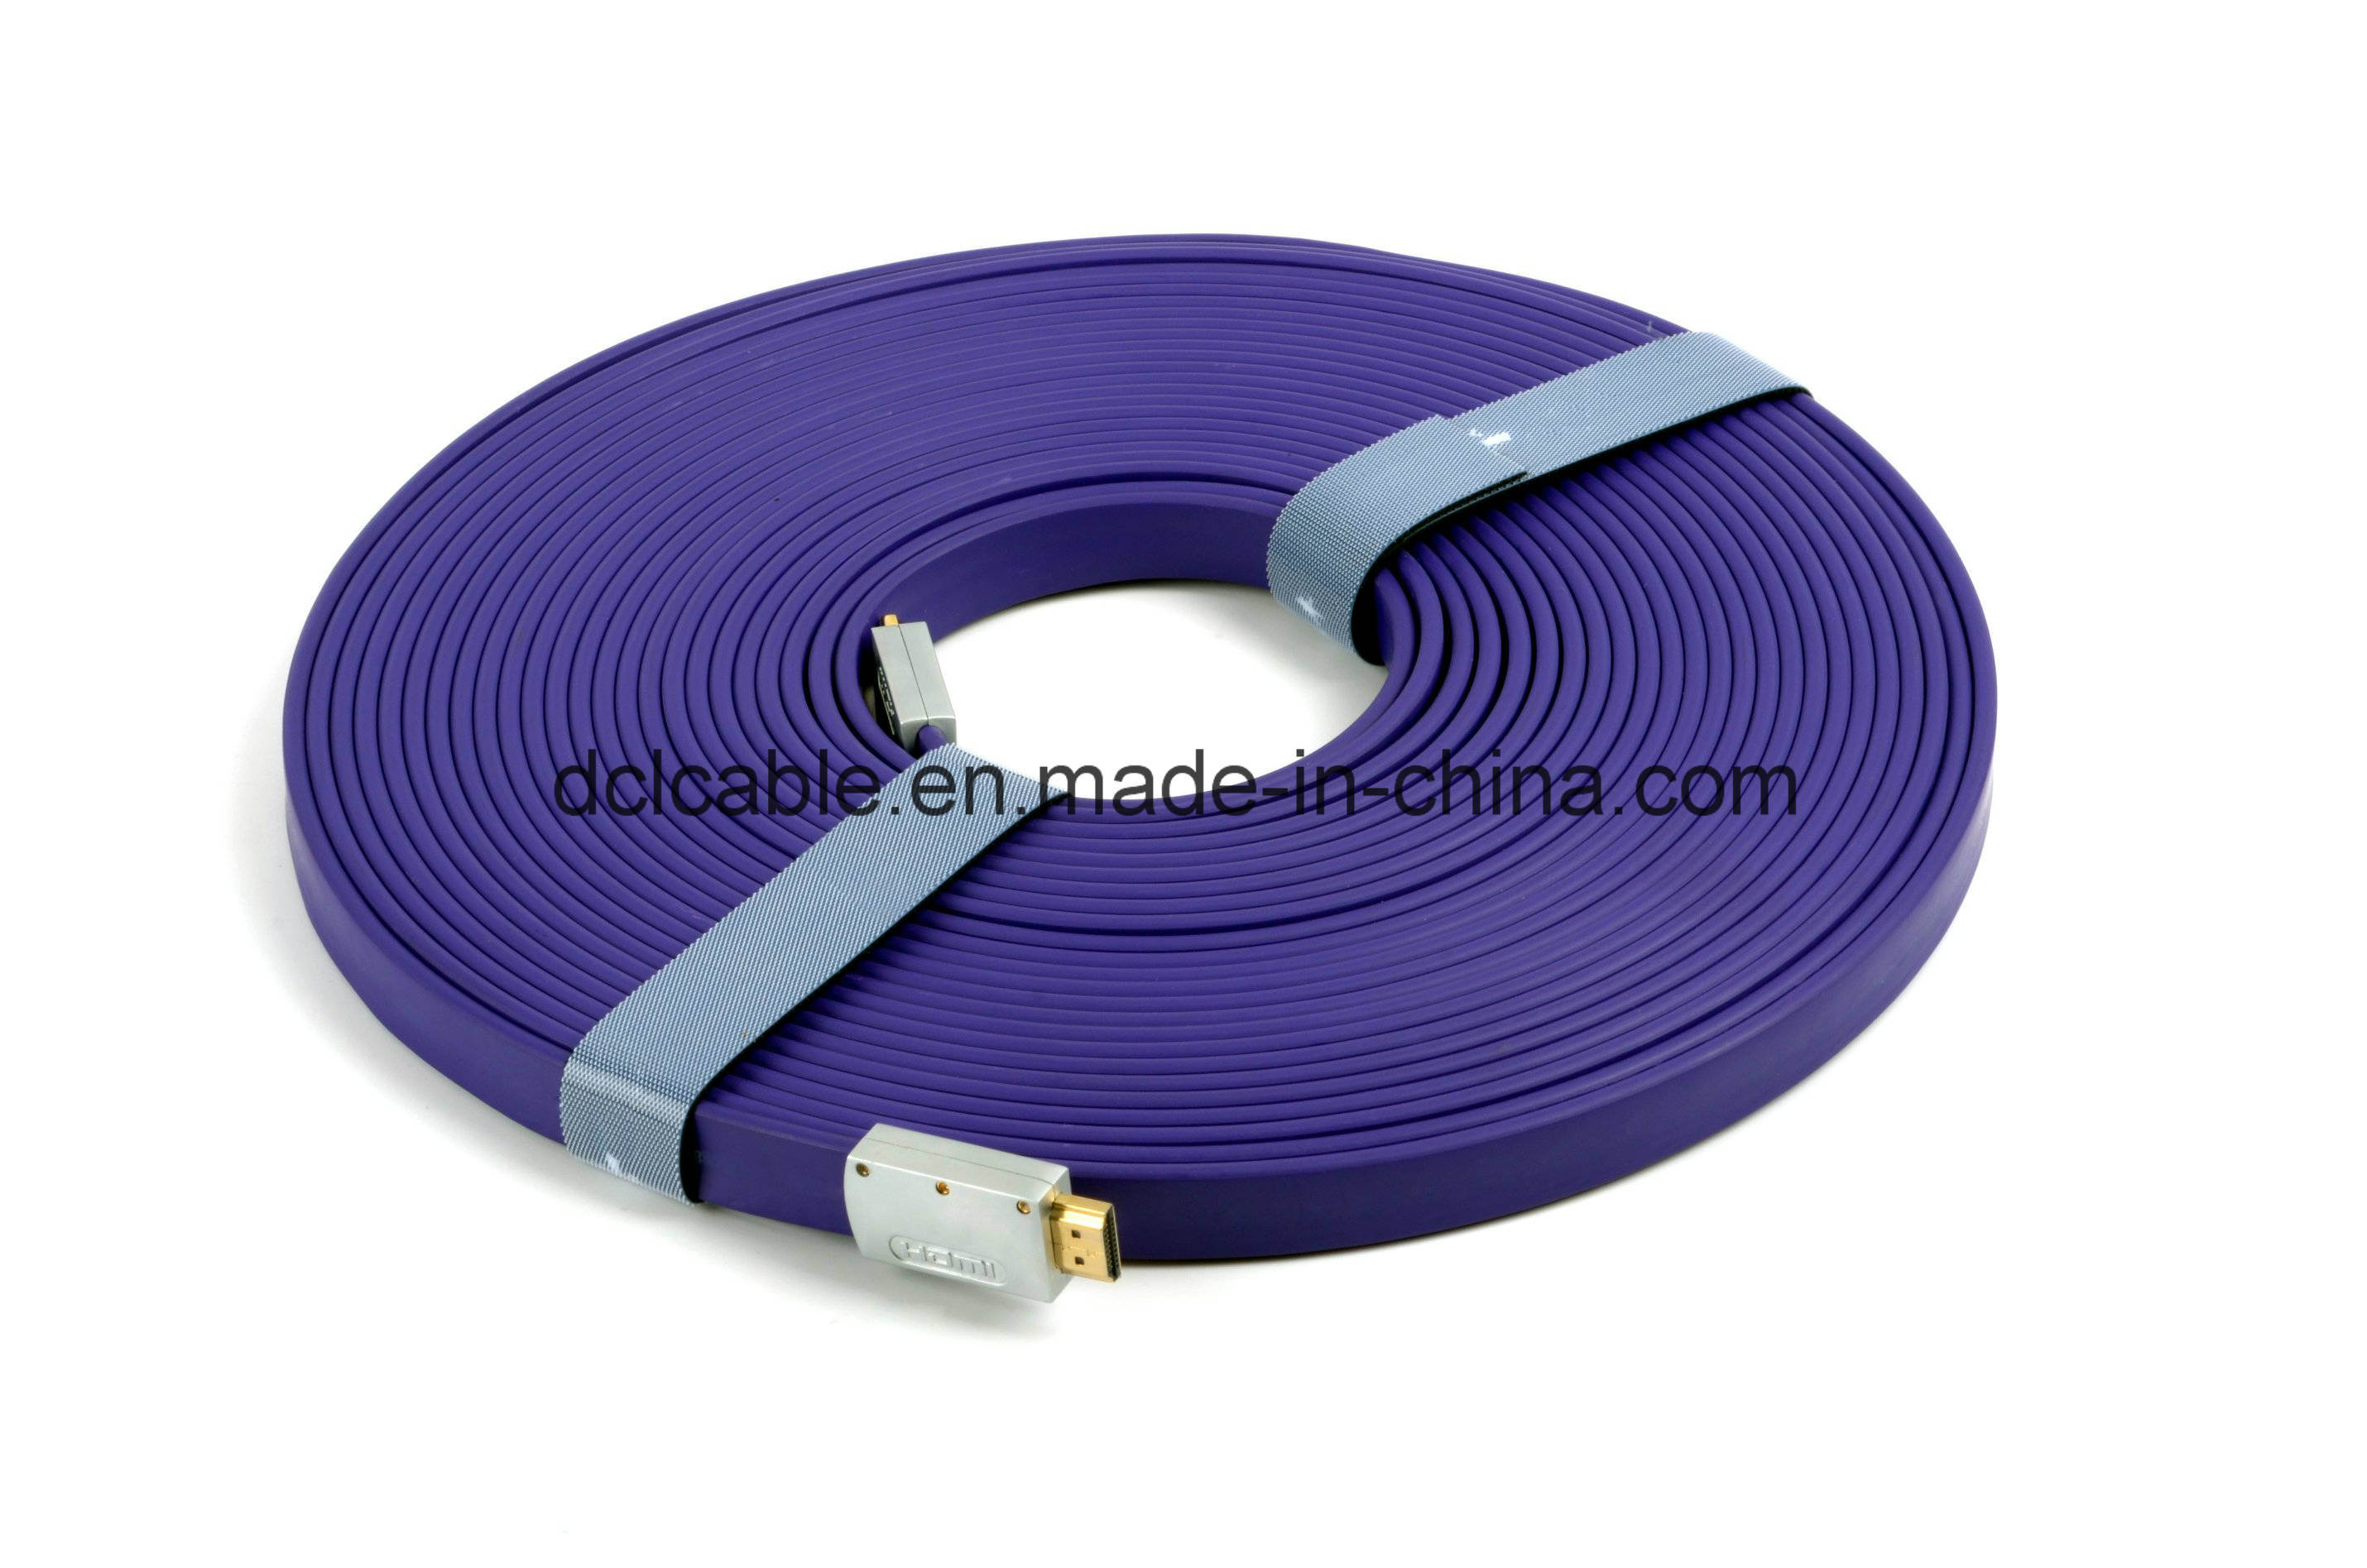 20m Metal Shell Flat HDMI Cable 1.4V Support 3D/1080P